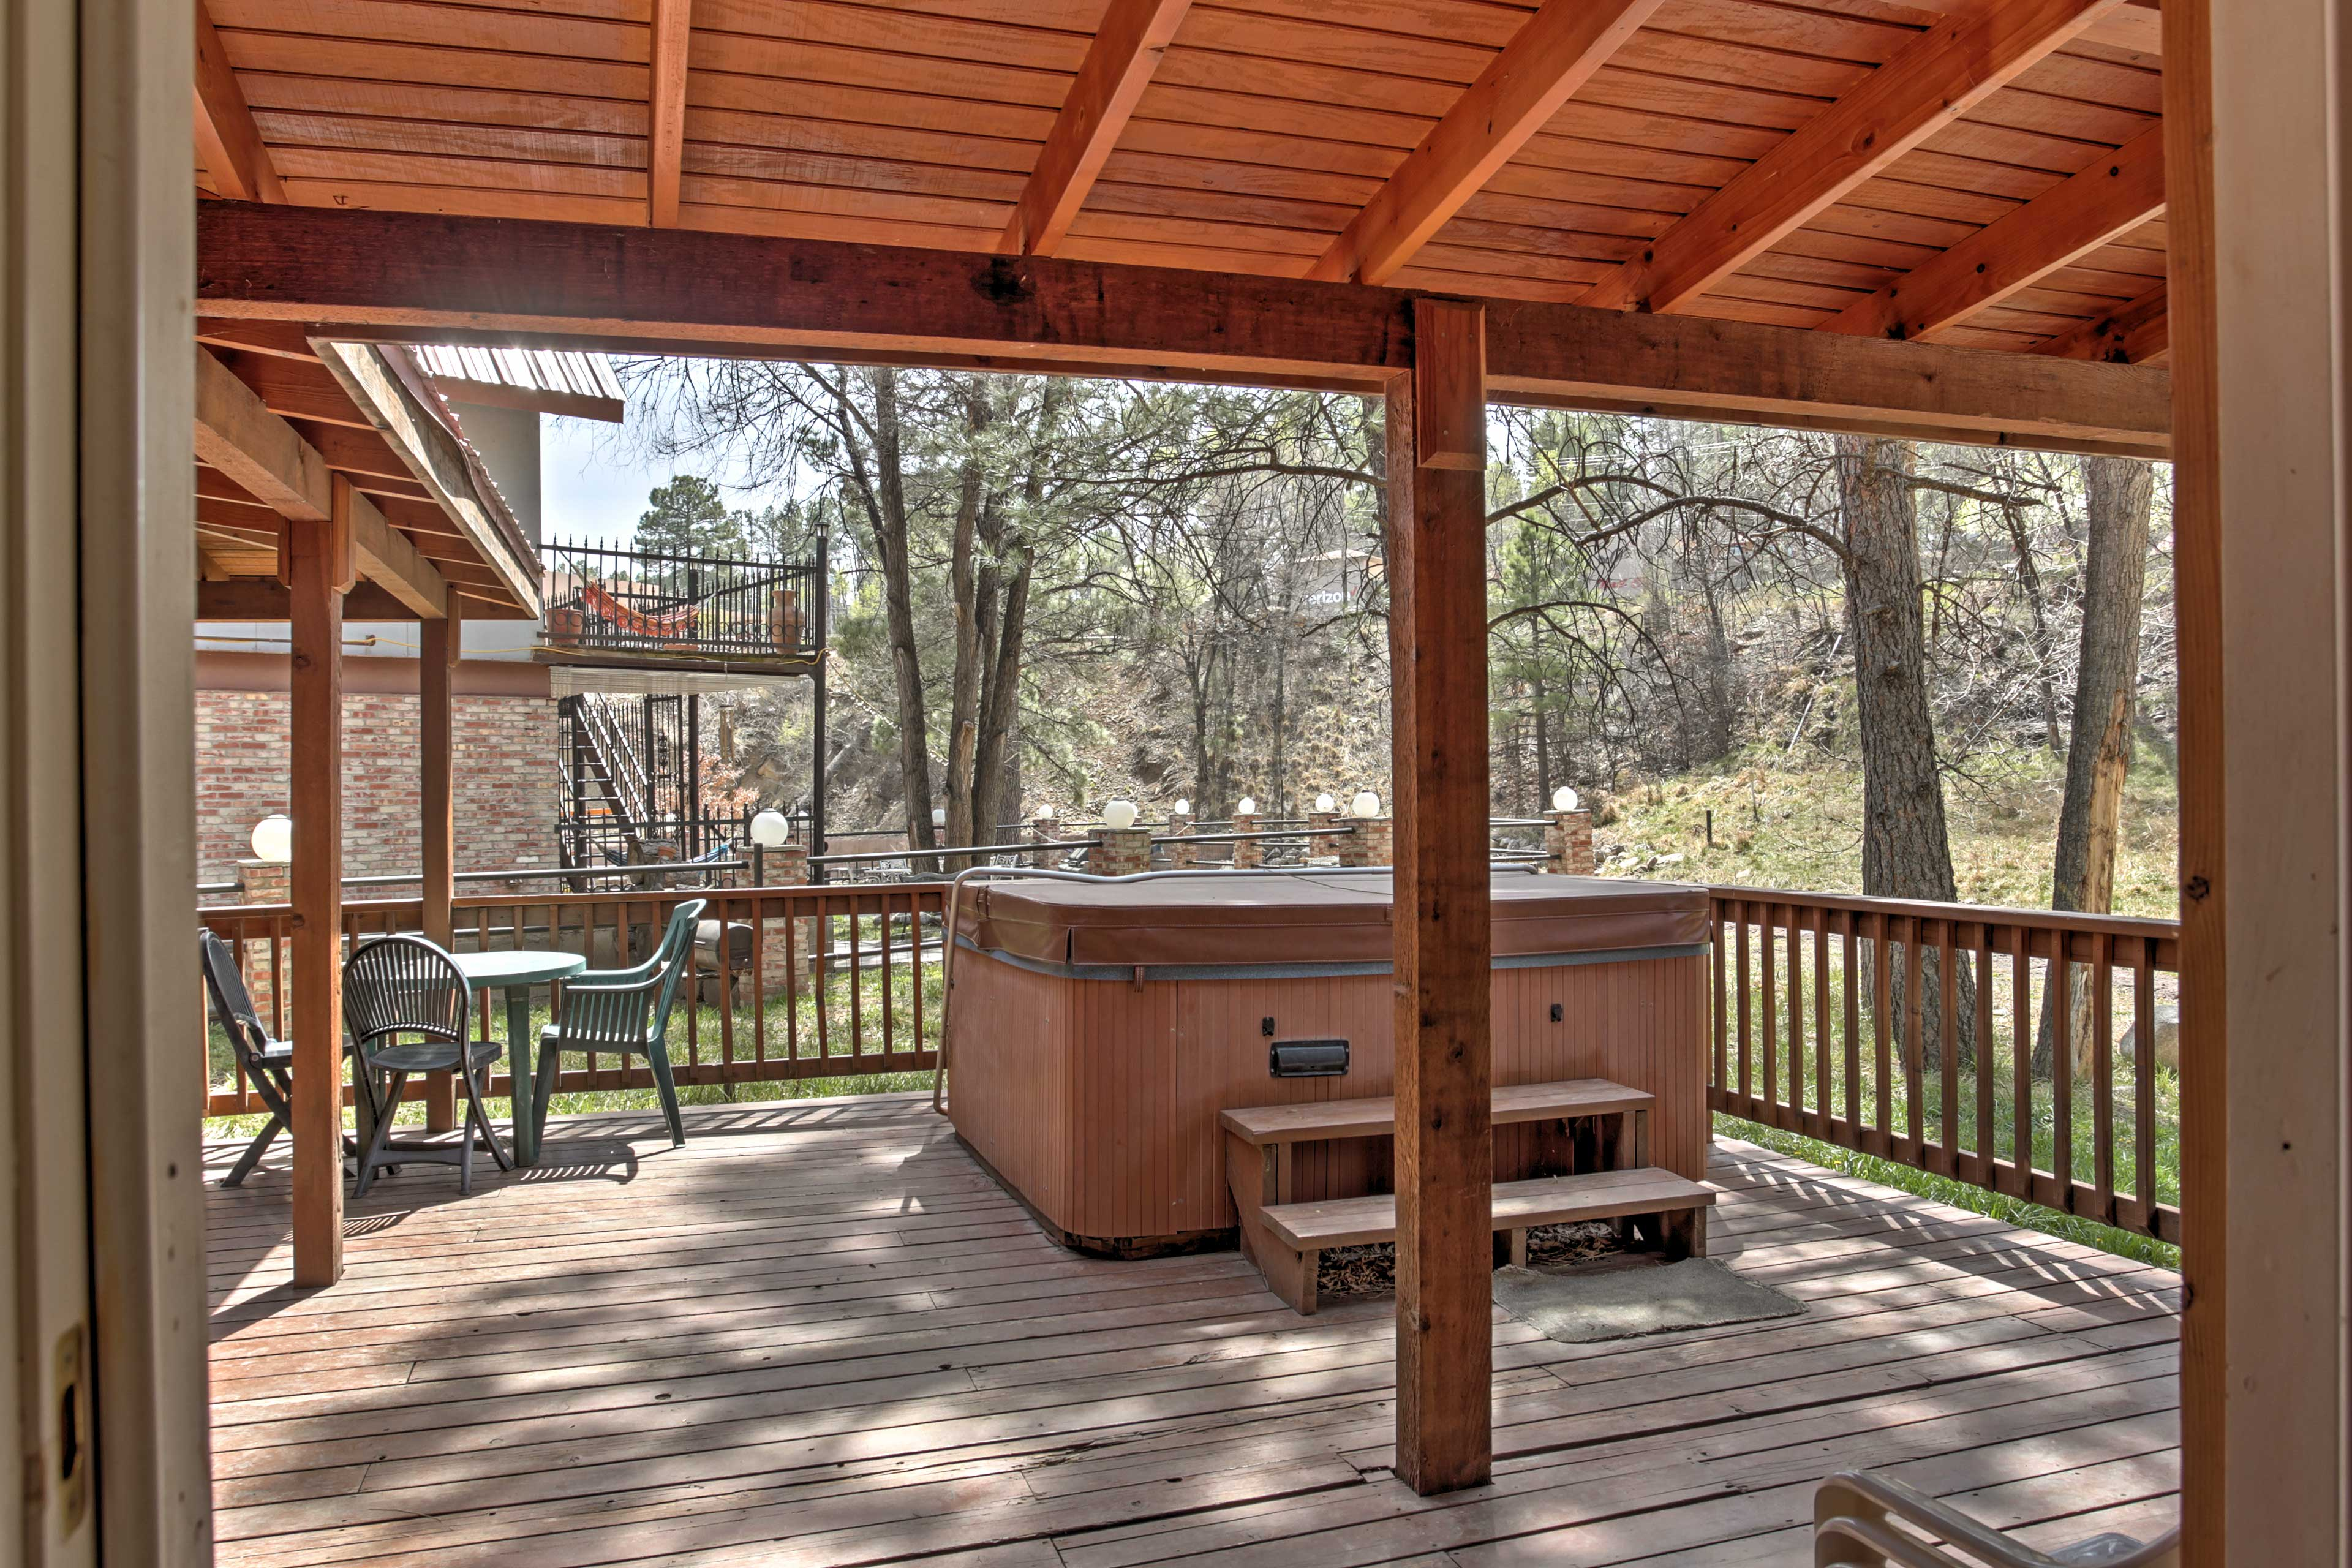 Overlook the beautiful wooded area as you relax outdoors.